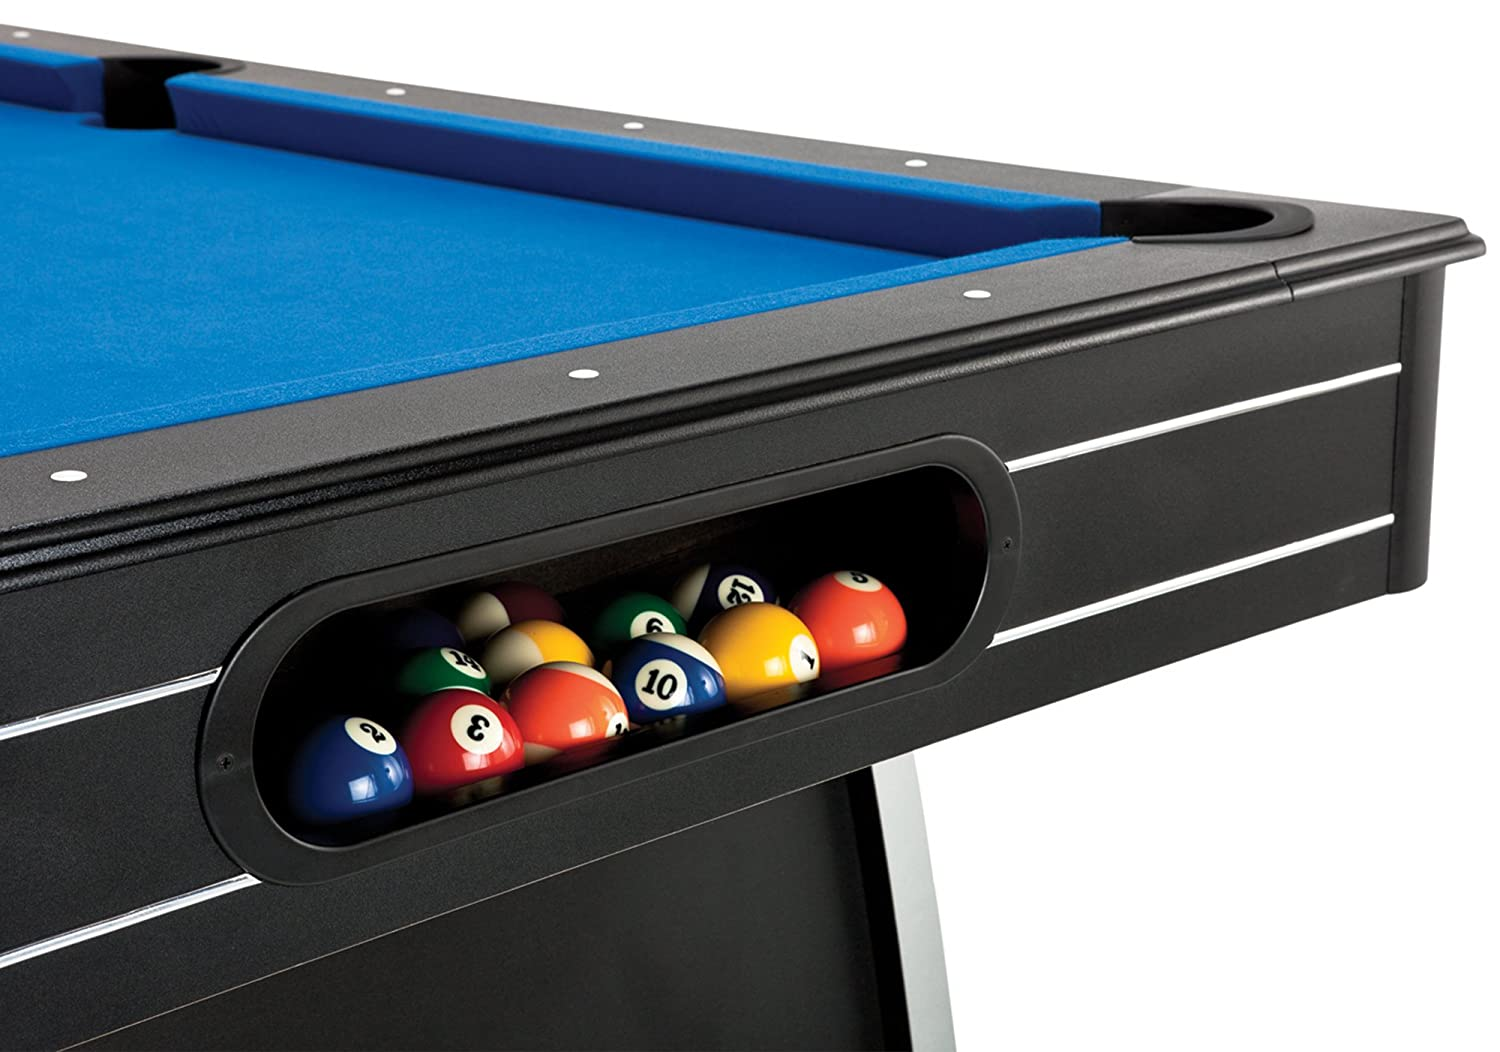 Amazon fat cat by gld products 64 0146 tucson mmxi 7 foot amazon fat cat by gld products 64 0146 tucson mmxi 7 foot billiard pool game table sports outdoors greentooth Image collections